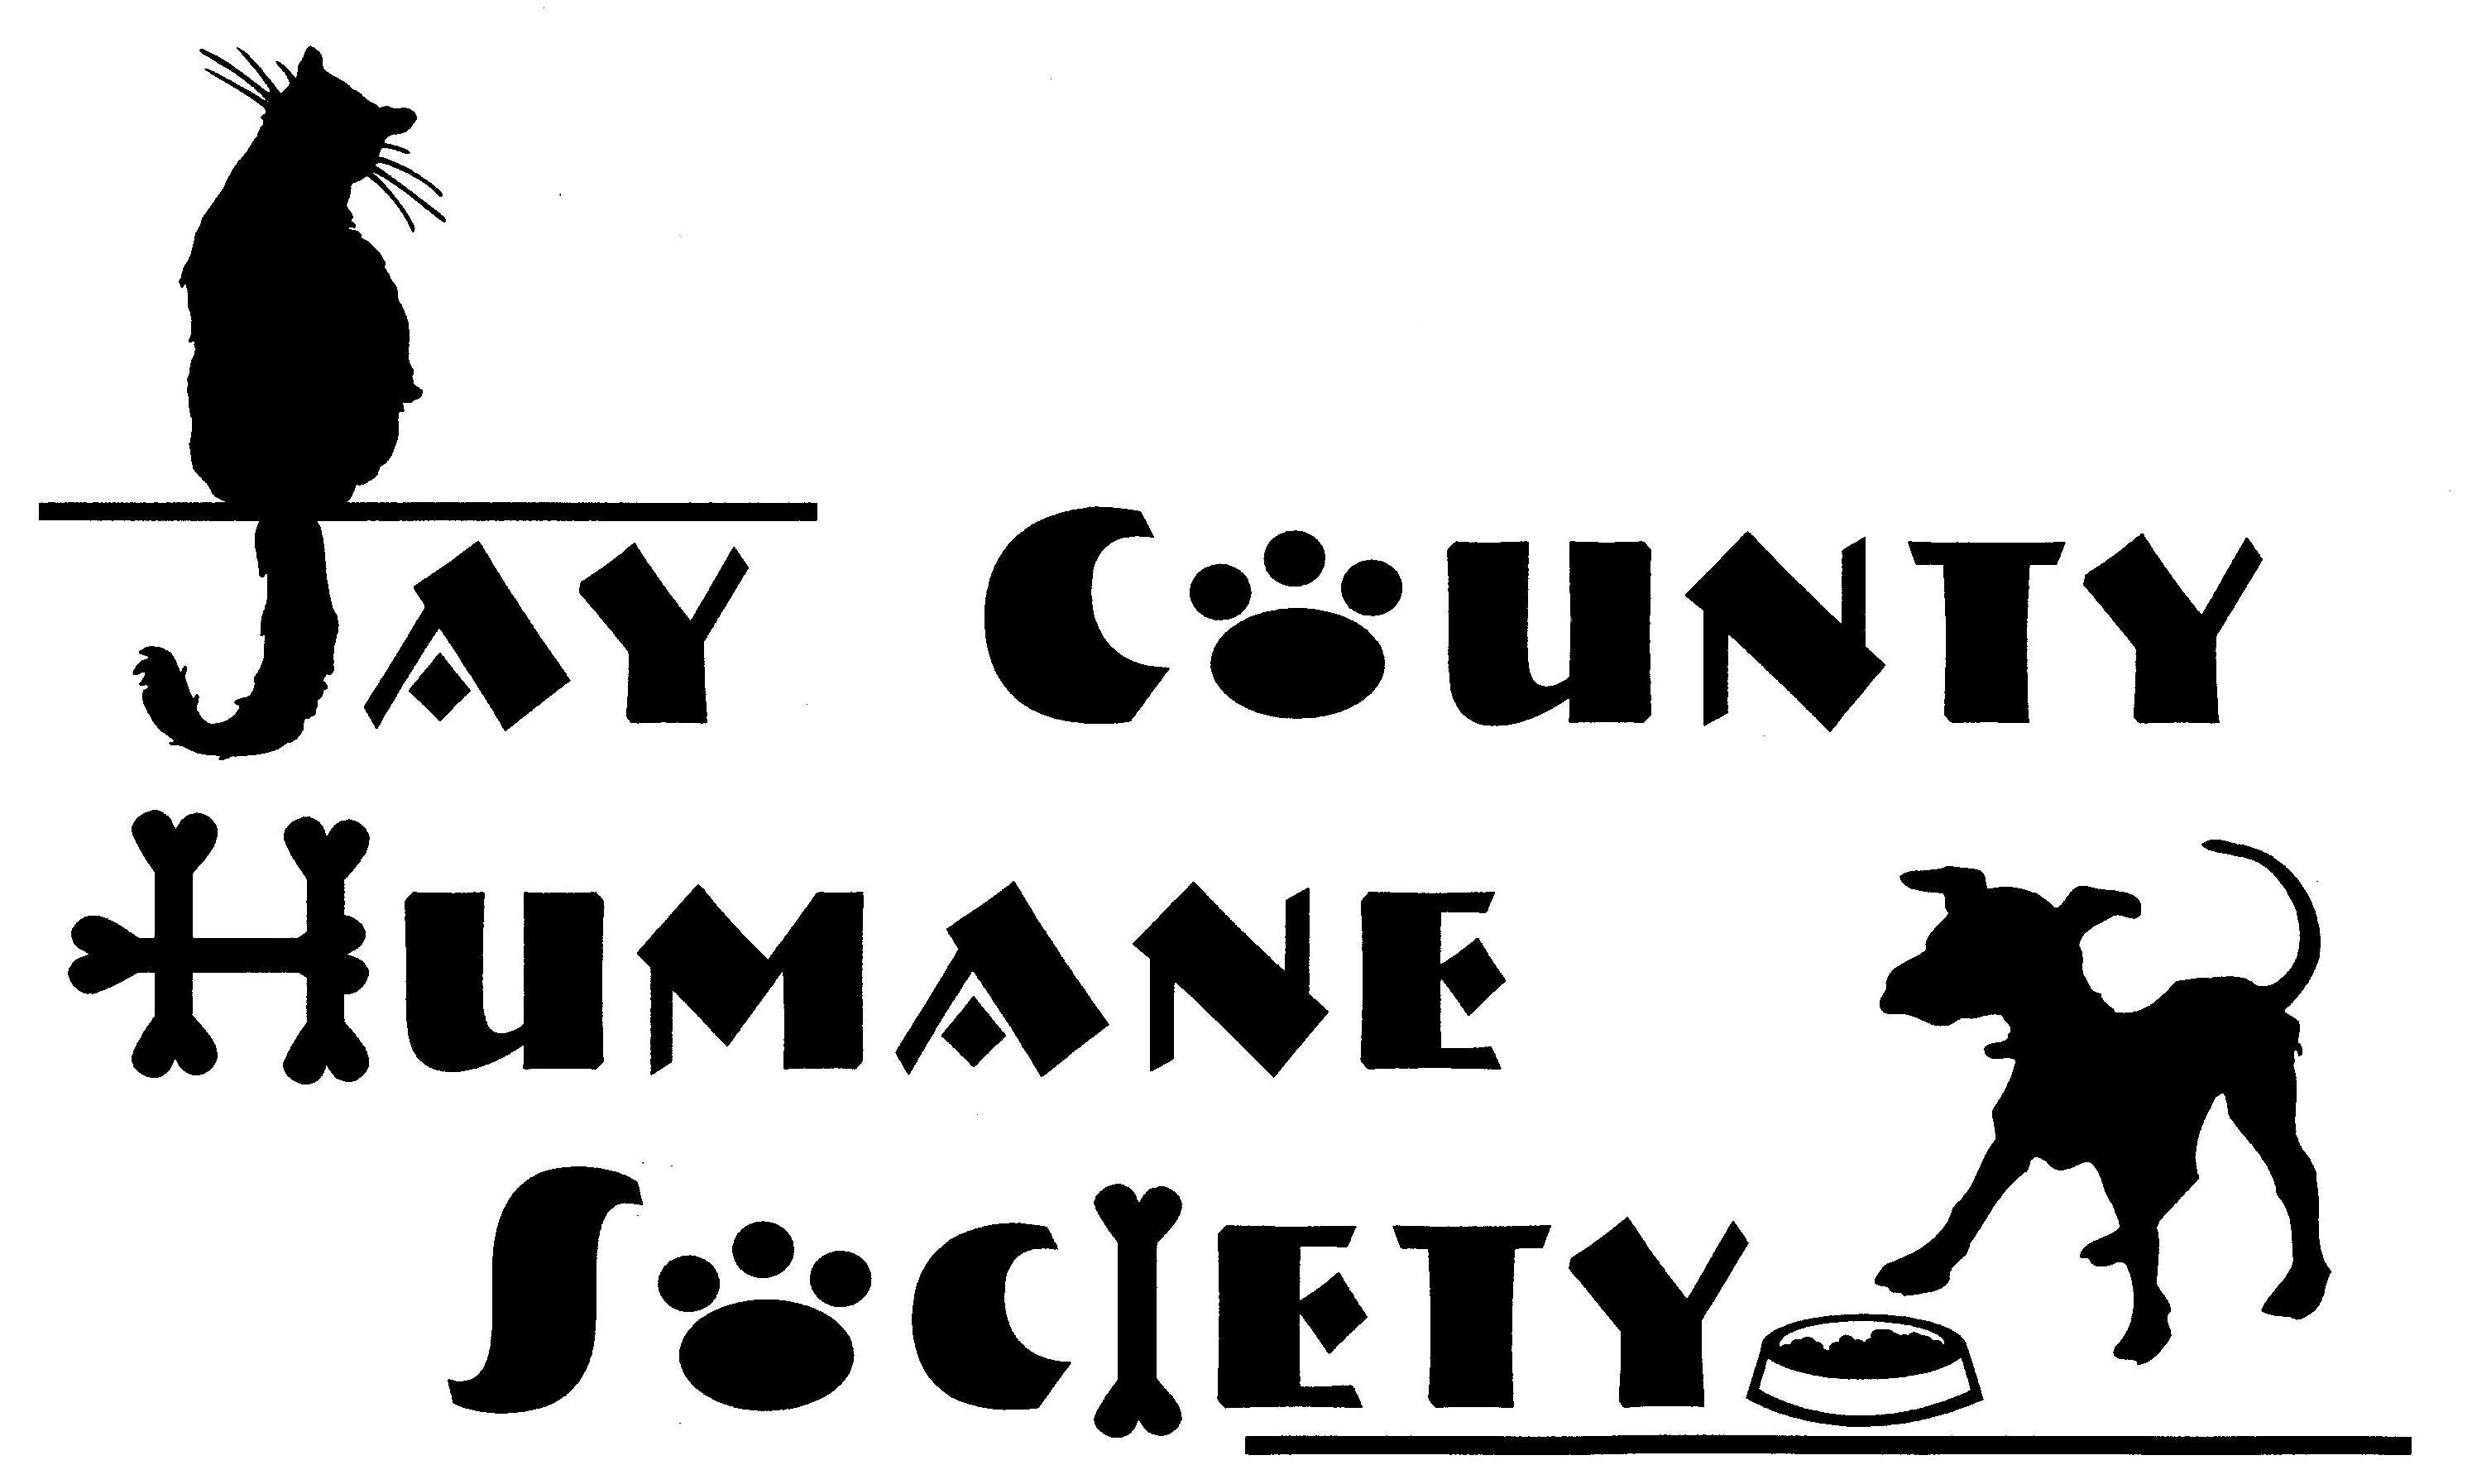 Jay County Humane Society